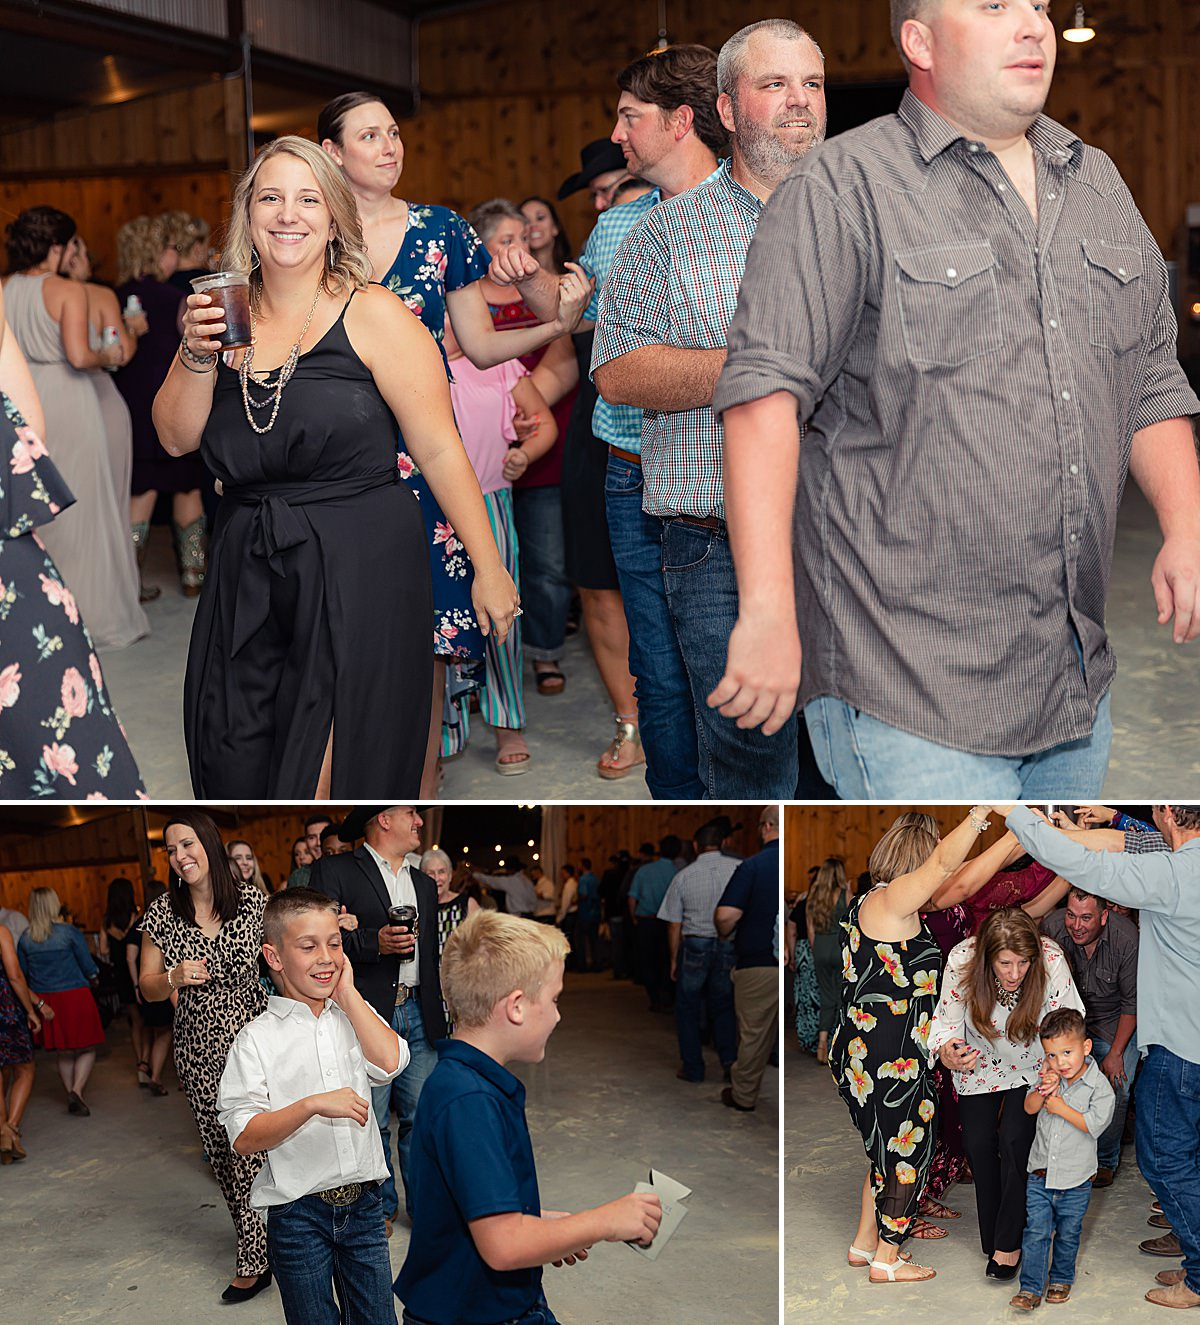 Rustic-Texas-Wedding-Hollow-Creek-Ranch-Carly-Barton-Photography_0007.jpg